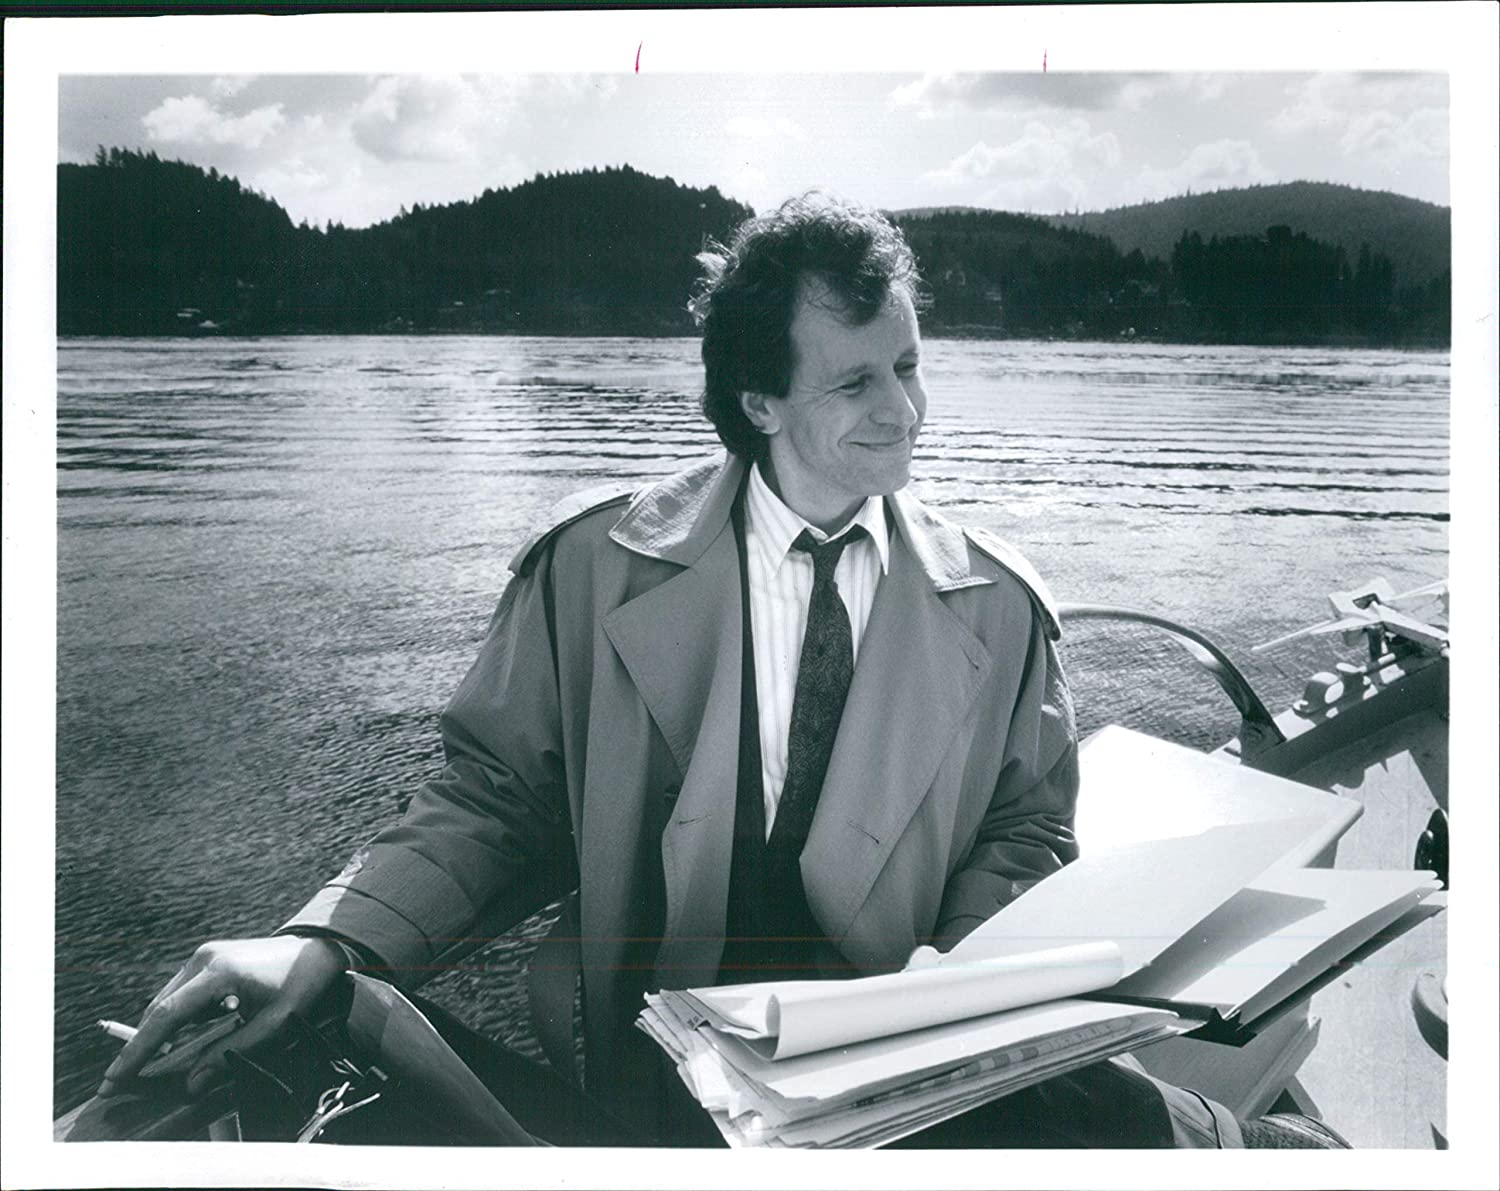 Amazon Com Vintage Photos Richard Gilliland Actor Celebrity Beautiful Lake View Hills Star 7x9 Photographs Find richard gilliland stock photos in hd and millions of other editorial images in the shutterstock collection. vintage photos richard gilliland actor